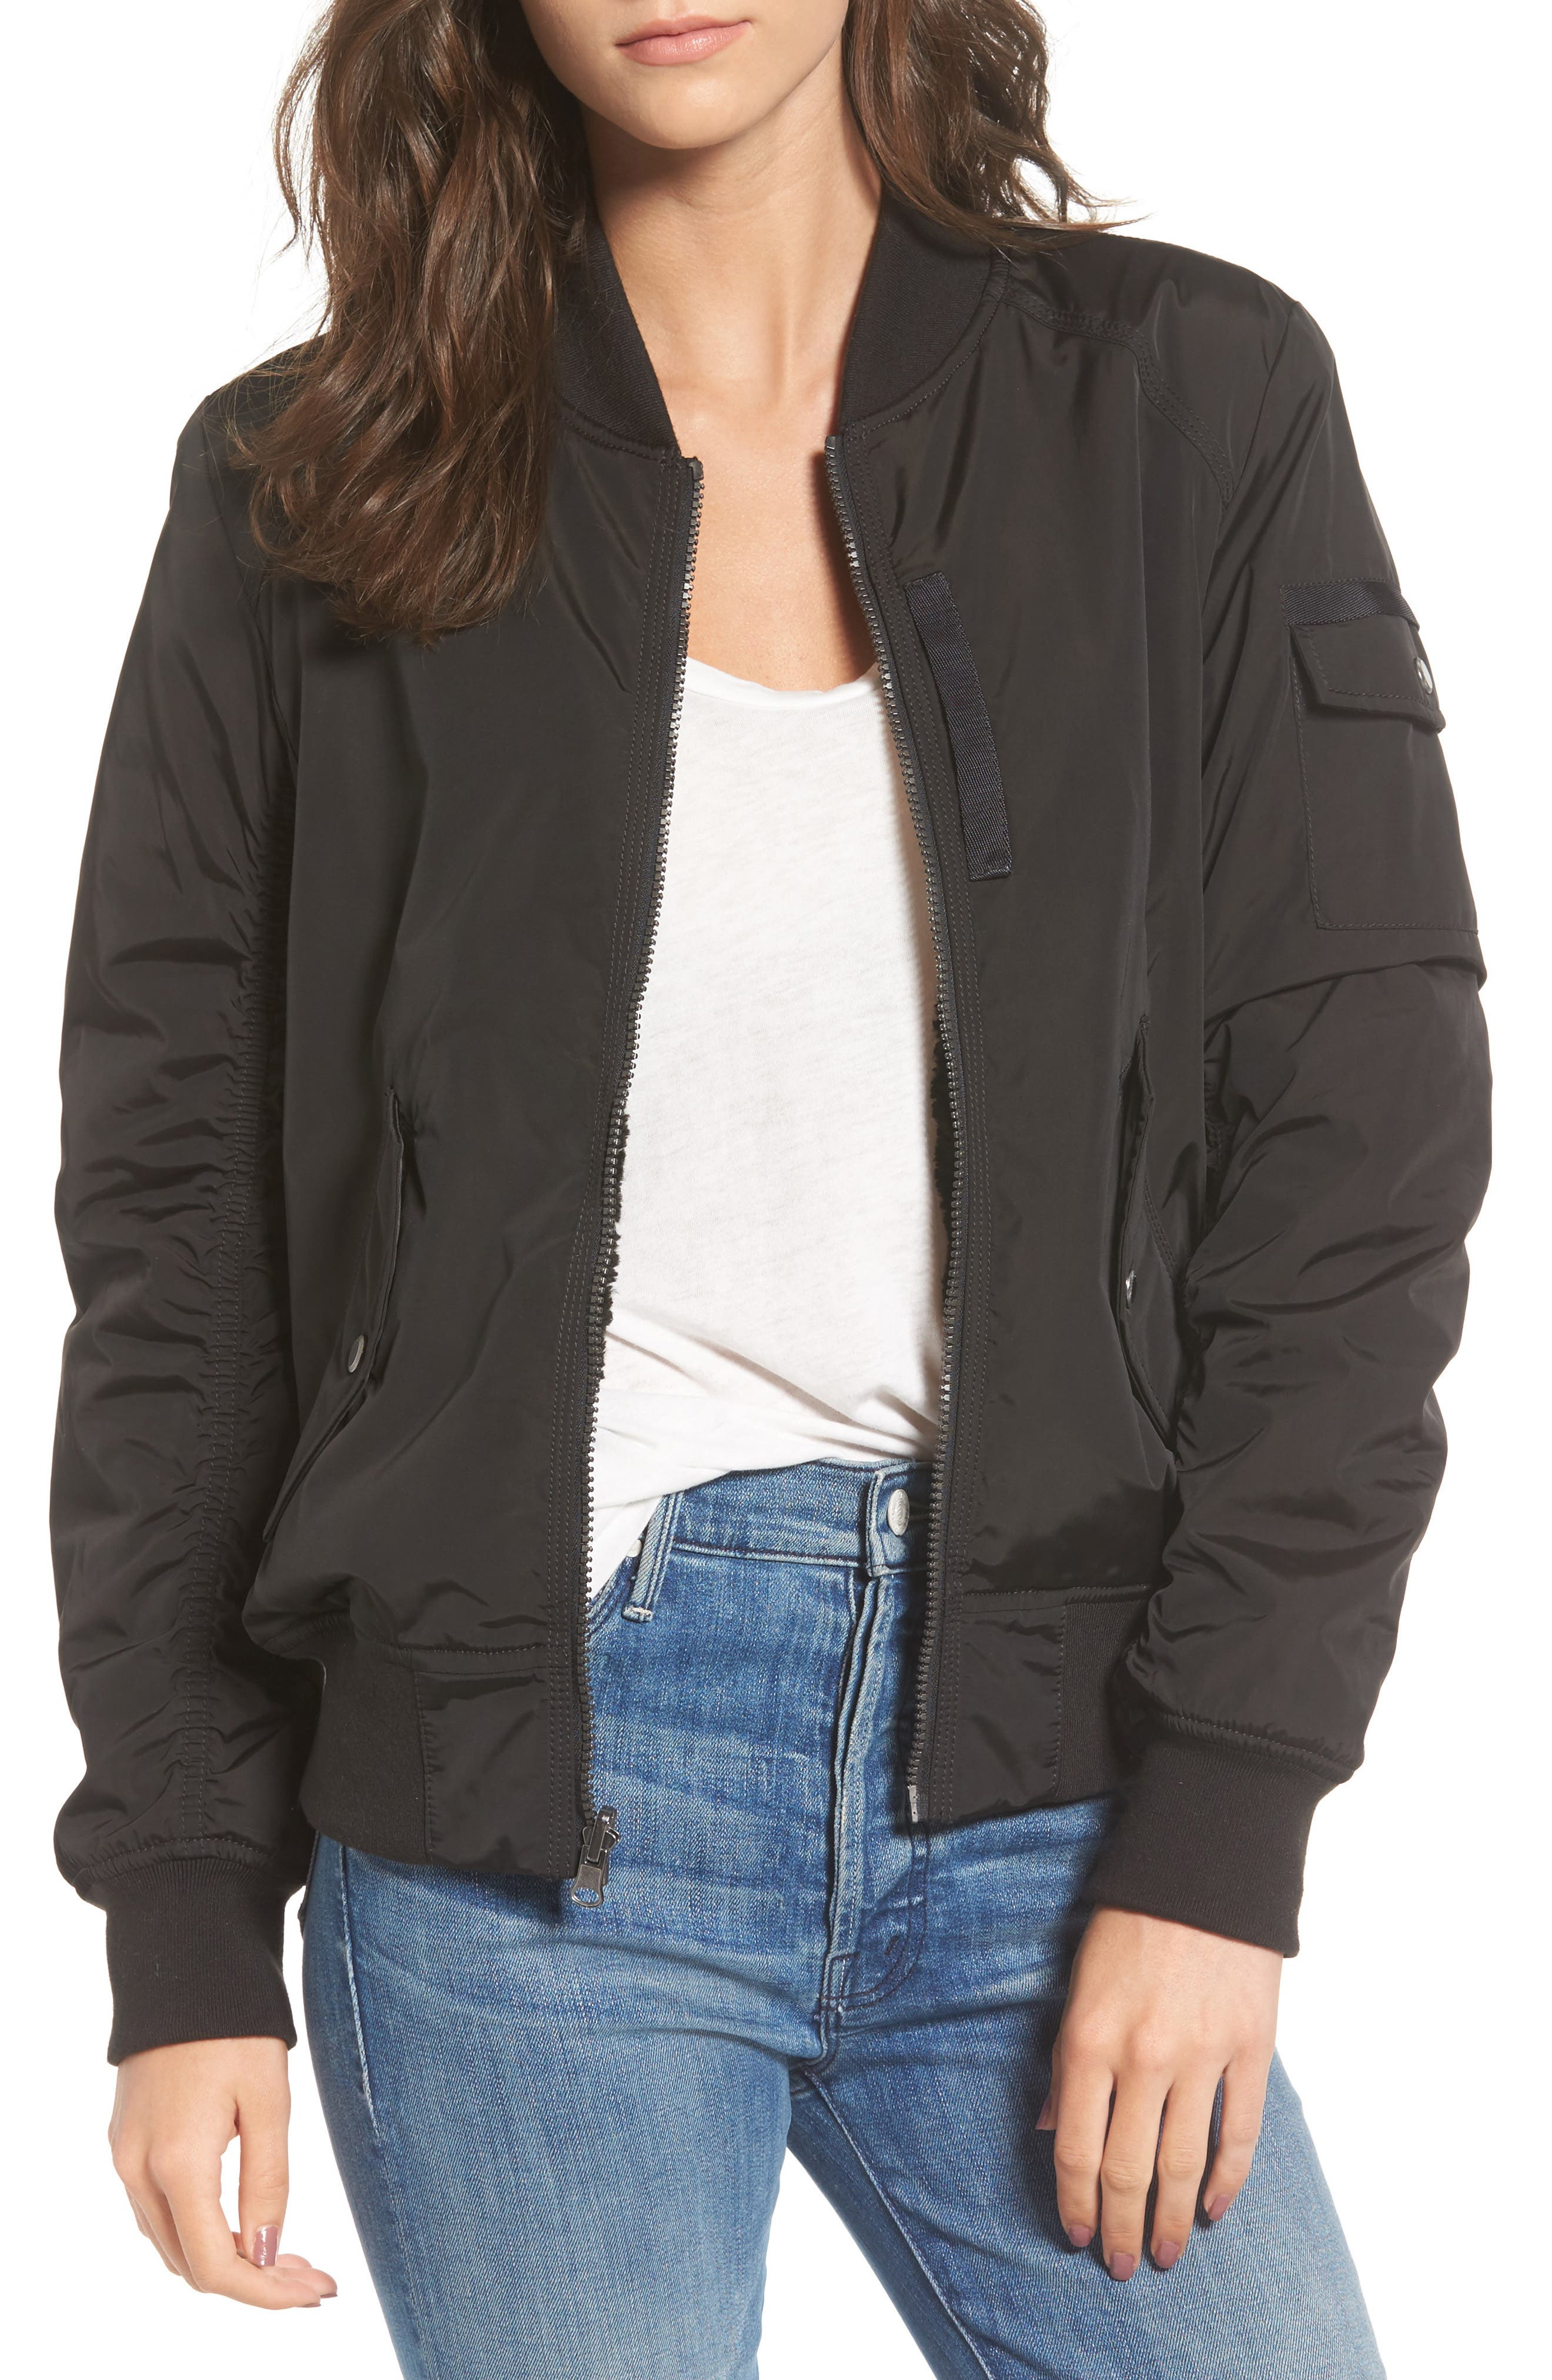 Andrew Marc Nicole Reversible Bomber Jacket,                         Main,                         color, 001